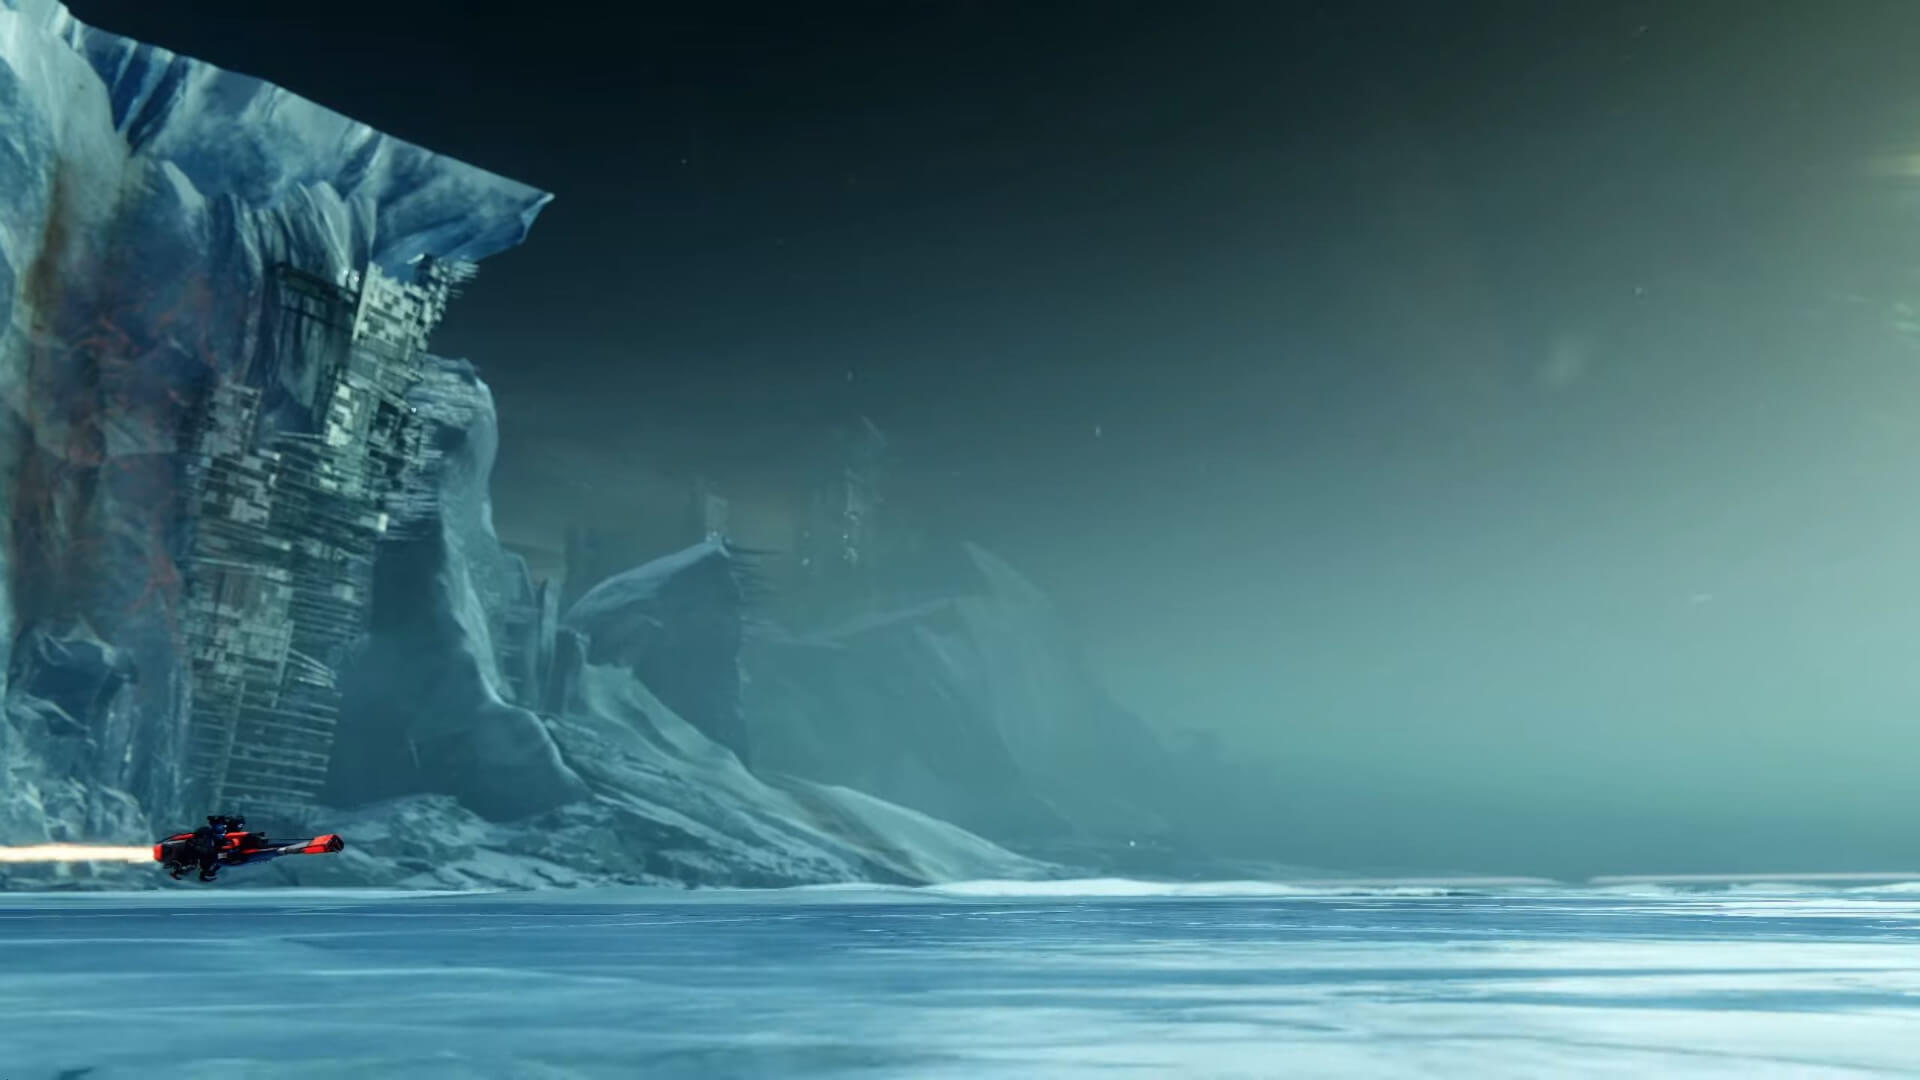 Destiny 2 Trailer Shows New Powers For Old Enemies